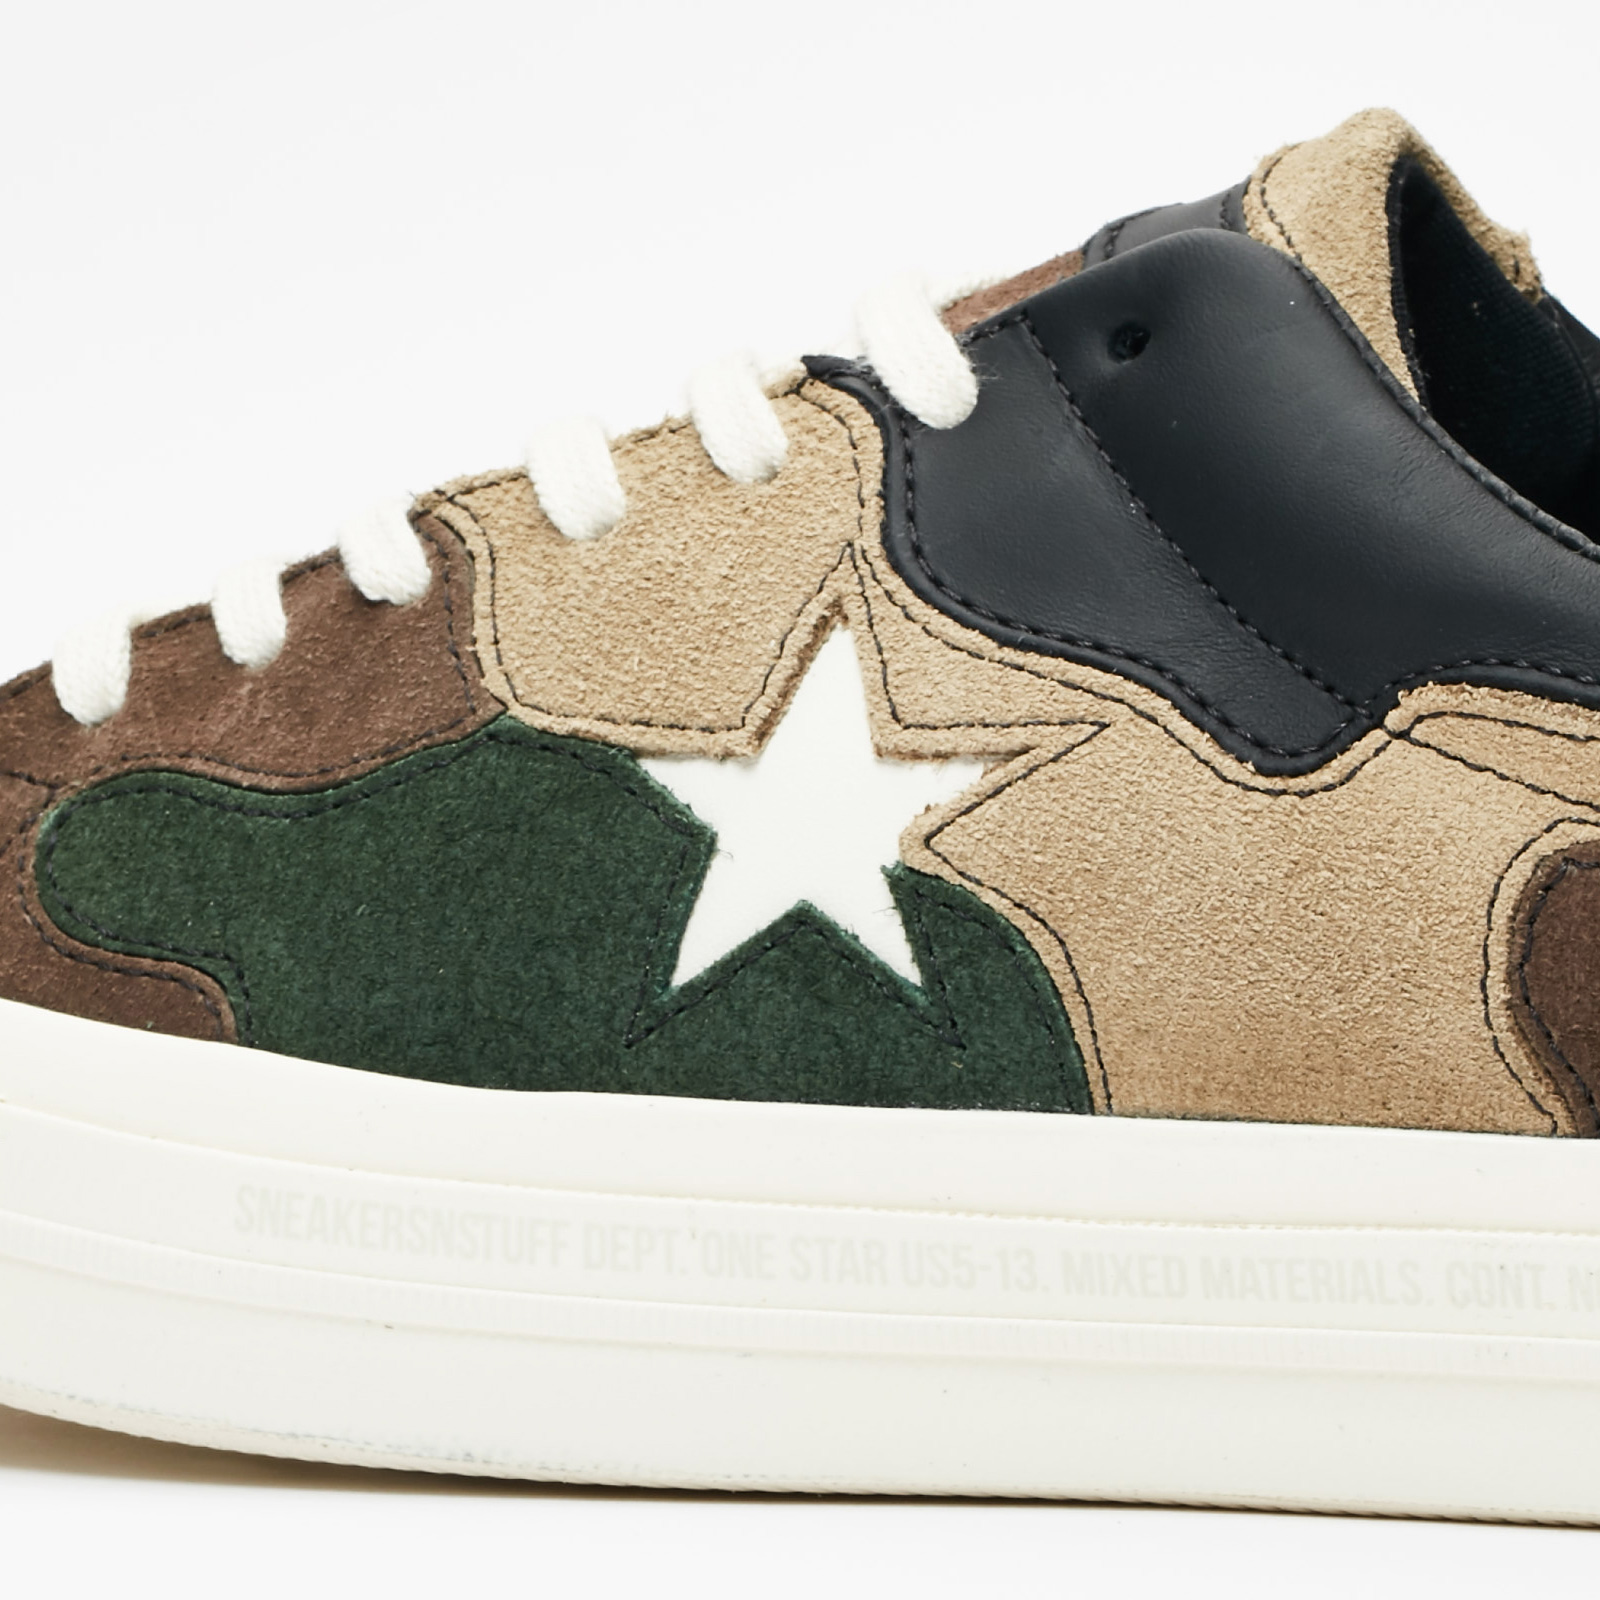 6e2a7af10921 Converse One Star x Sneakersnstuff - 161406c - Sneakersnstuff ...